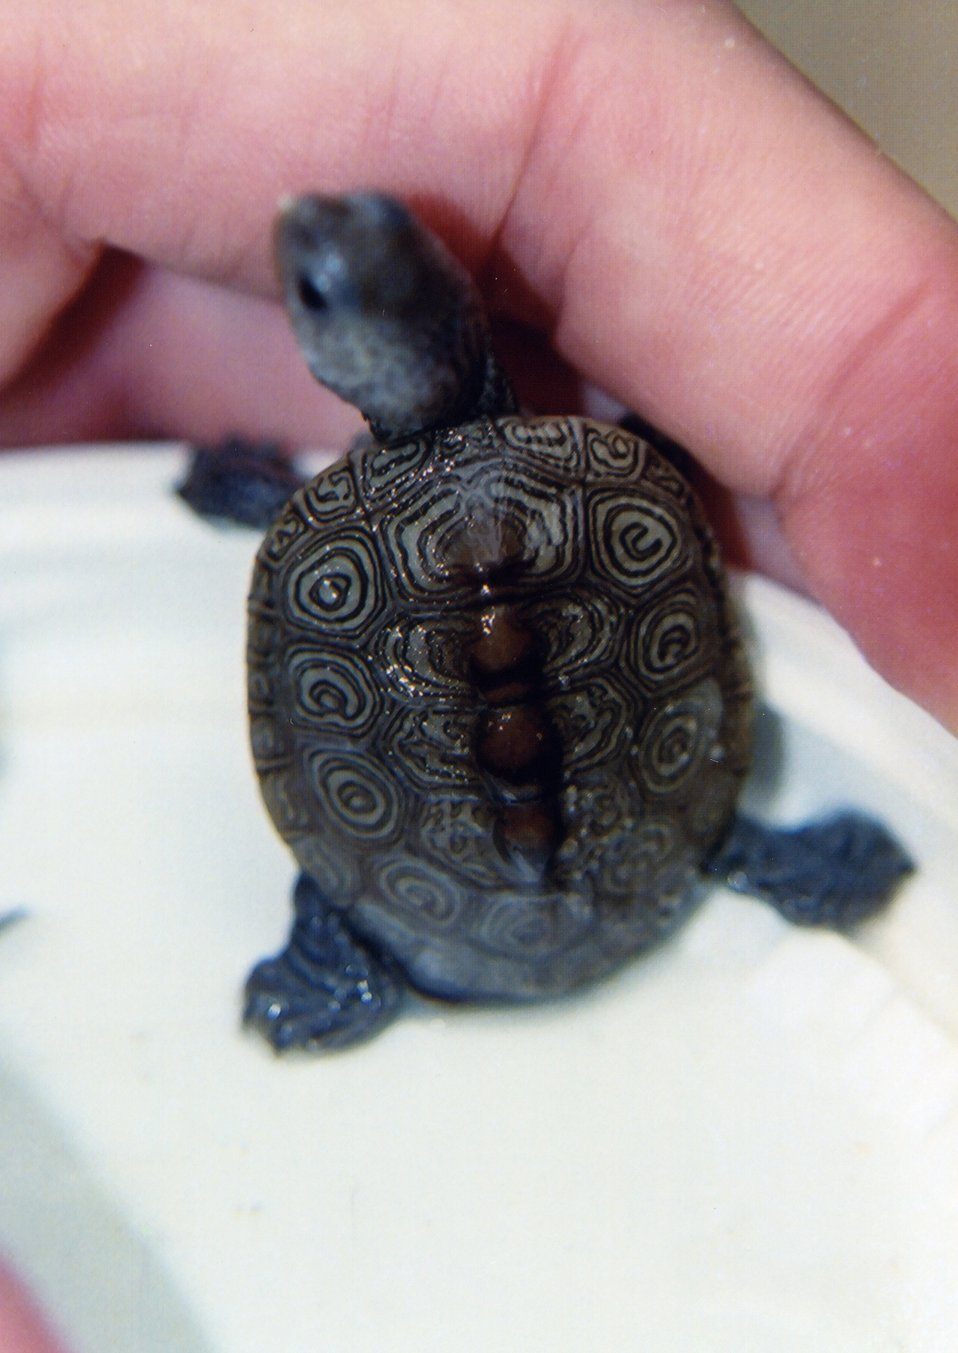 Diamondback terrapin hatchling with typical shell markings.